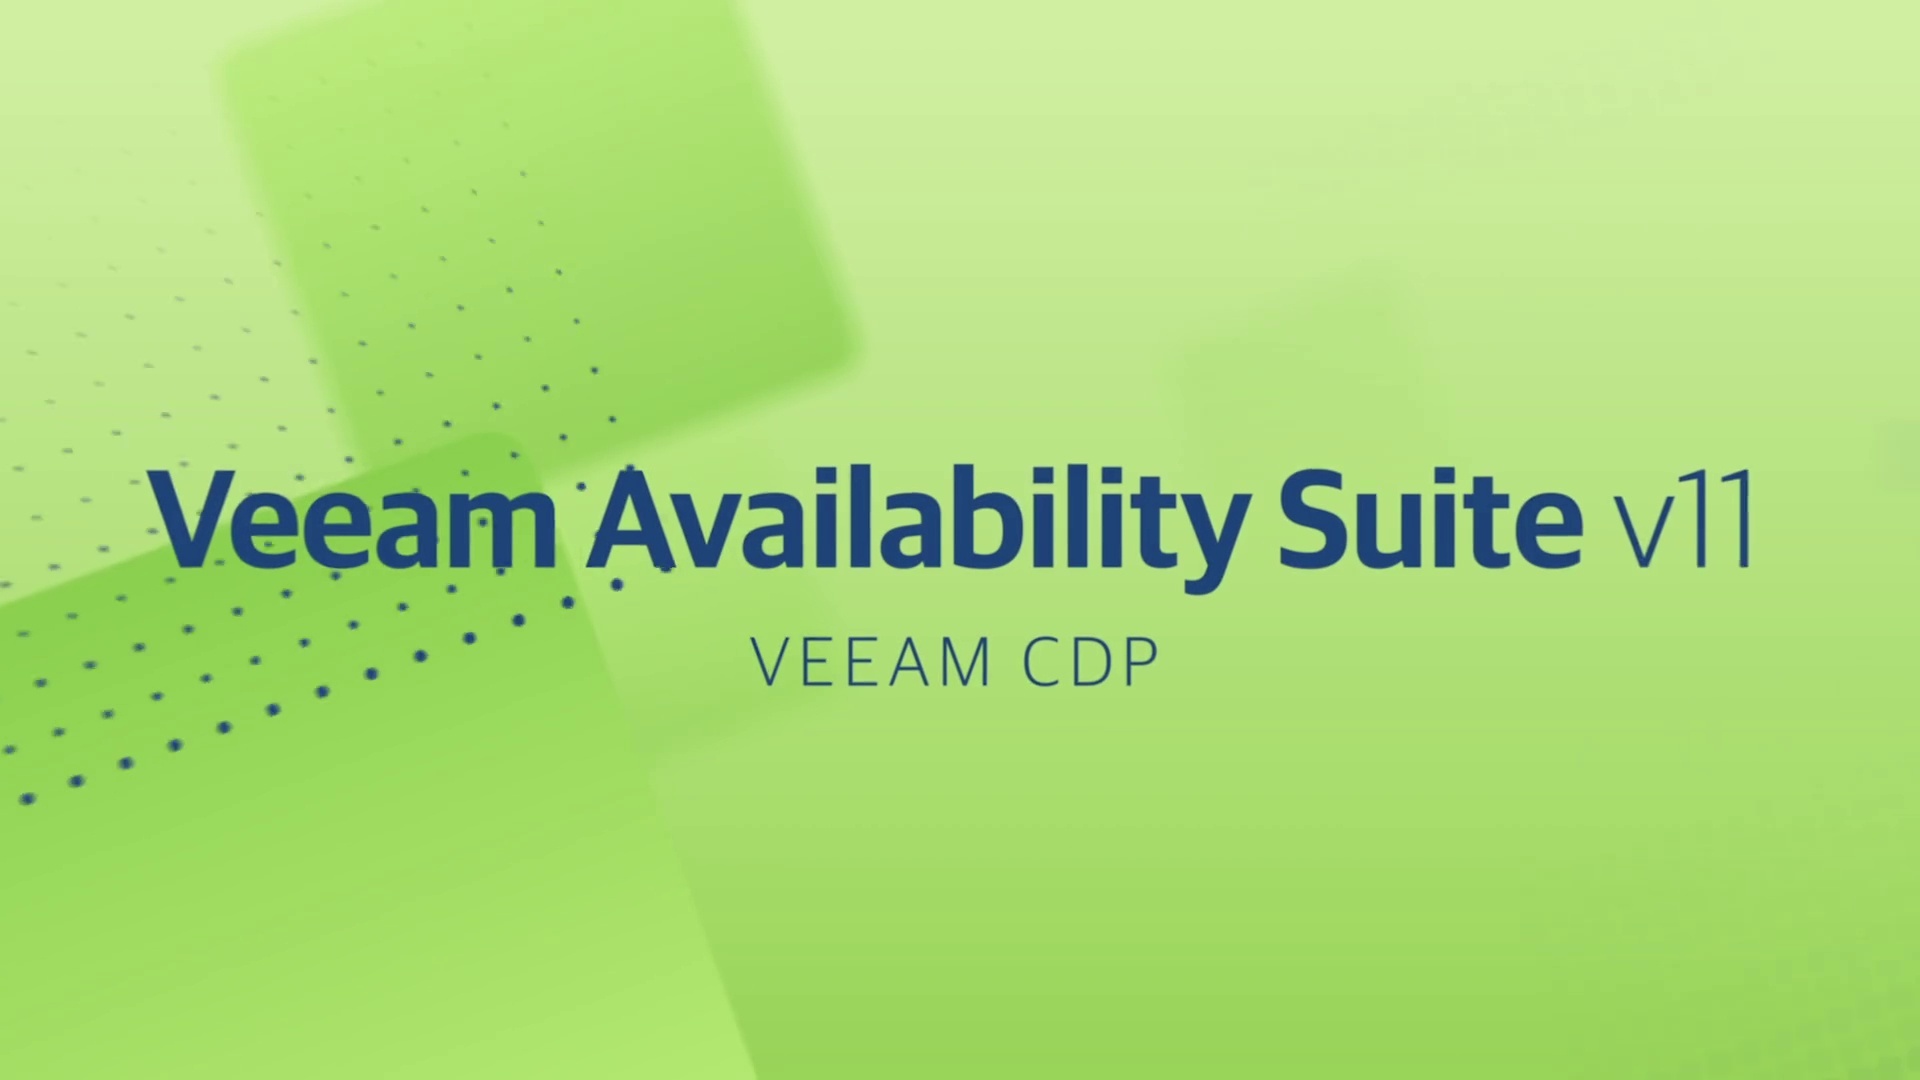 Product Launch - v11 - DA Technical Video - Veeam CDP